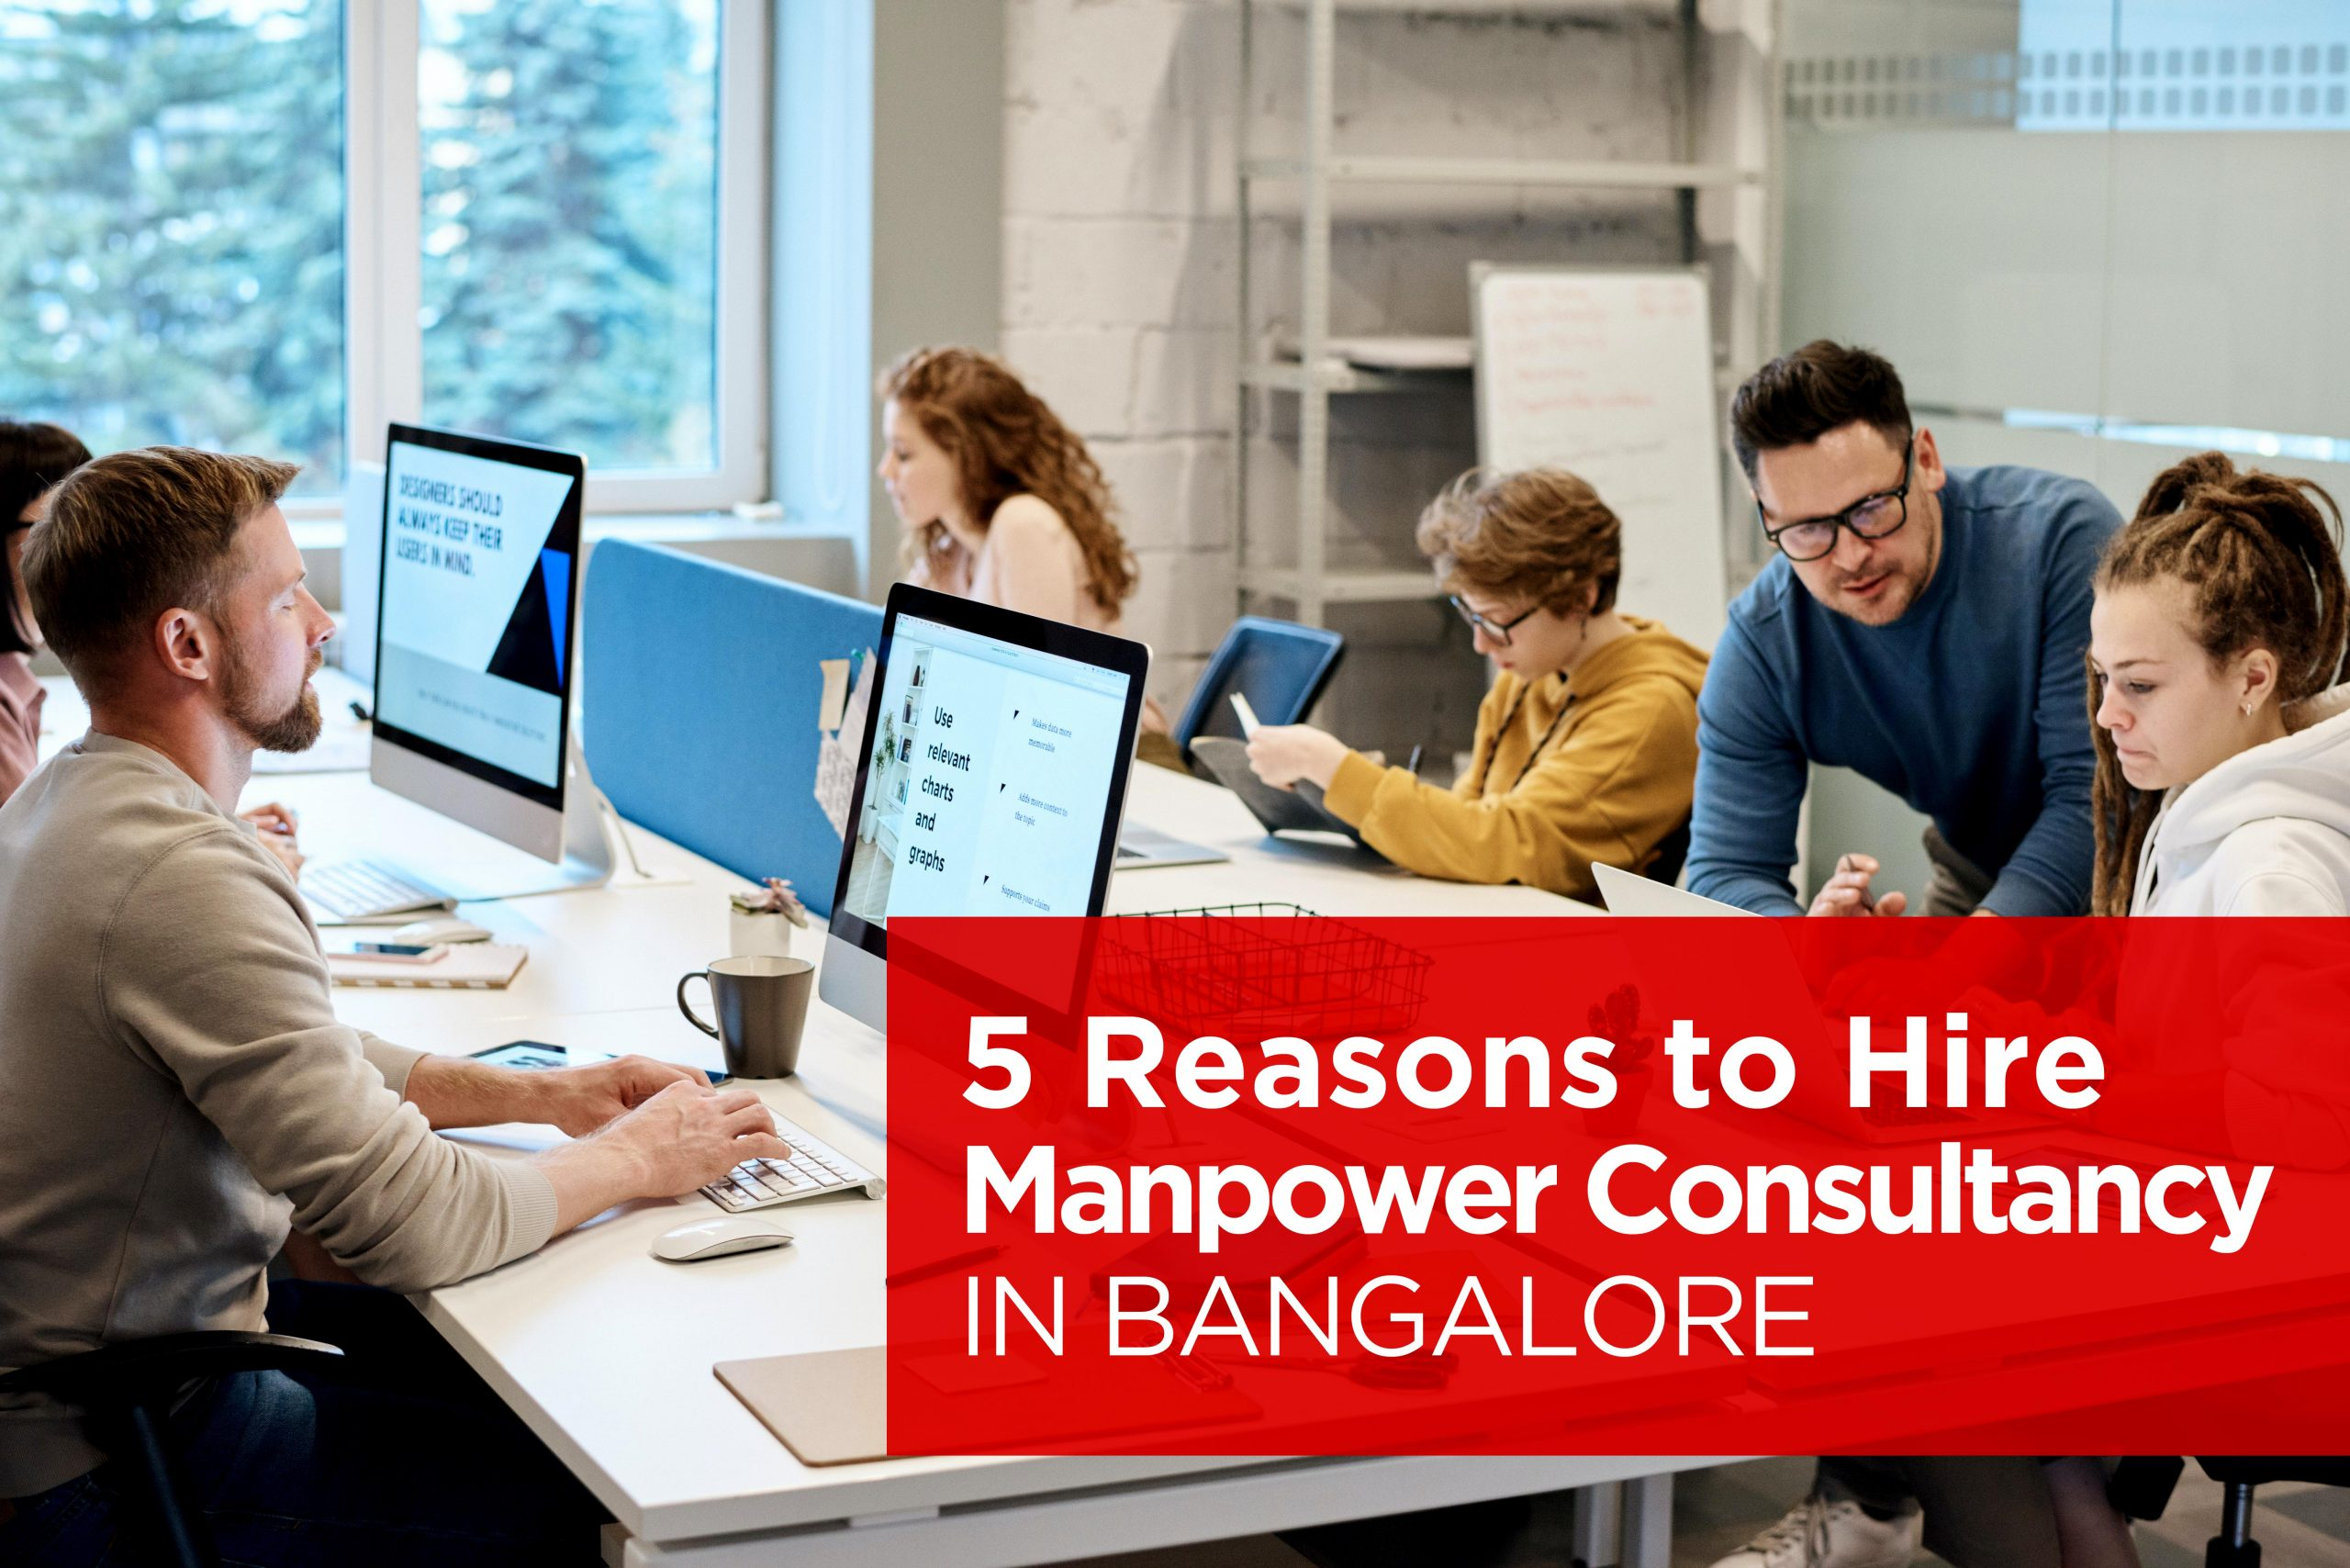 5 Reasons to Hire Manpower Consultancy in Bangalore